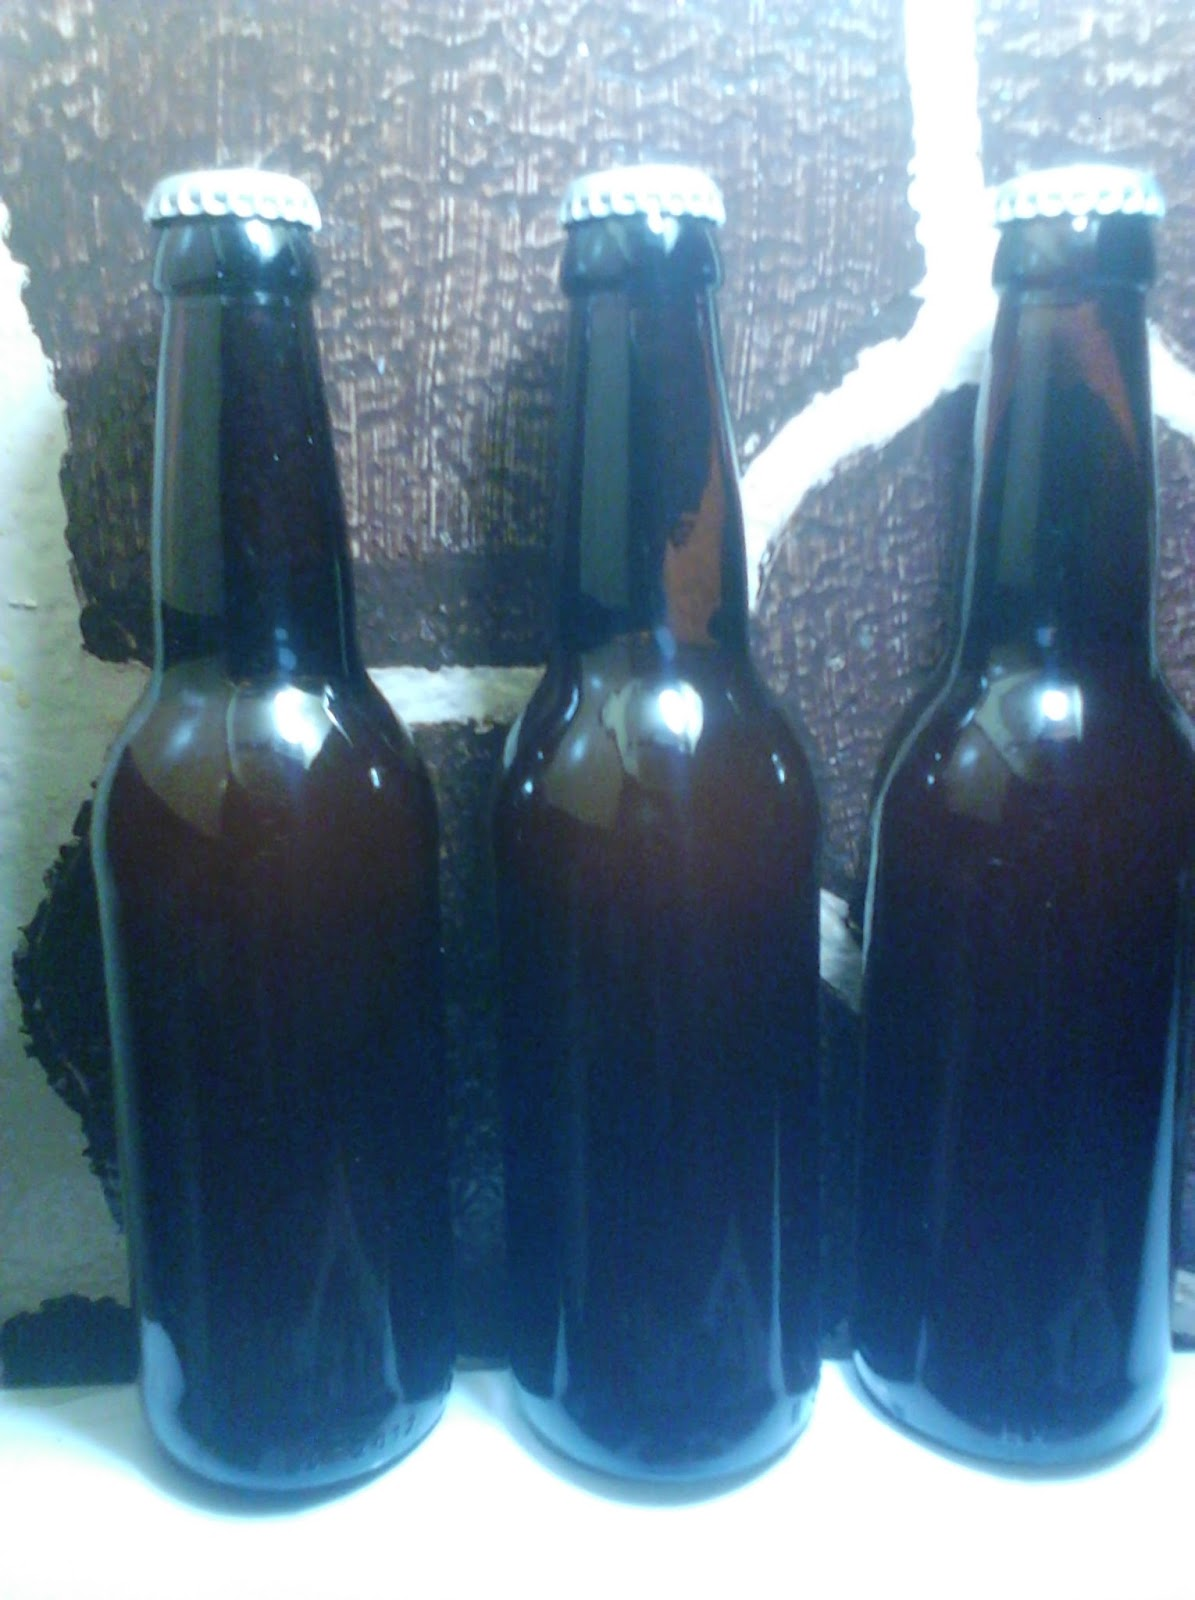 Capped bottles of my brew